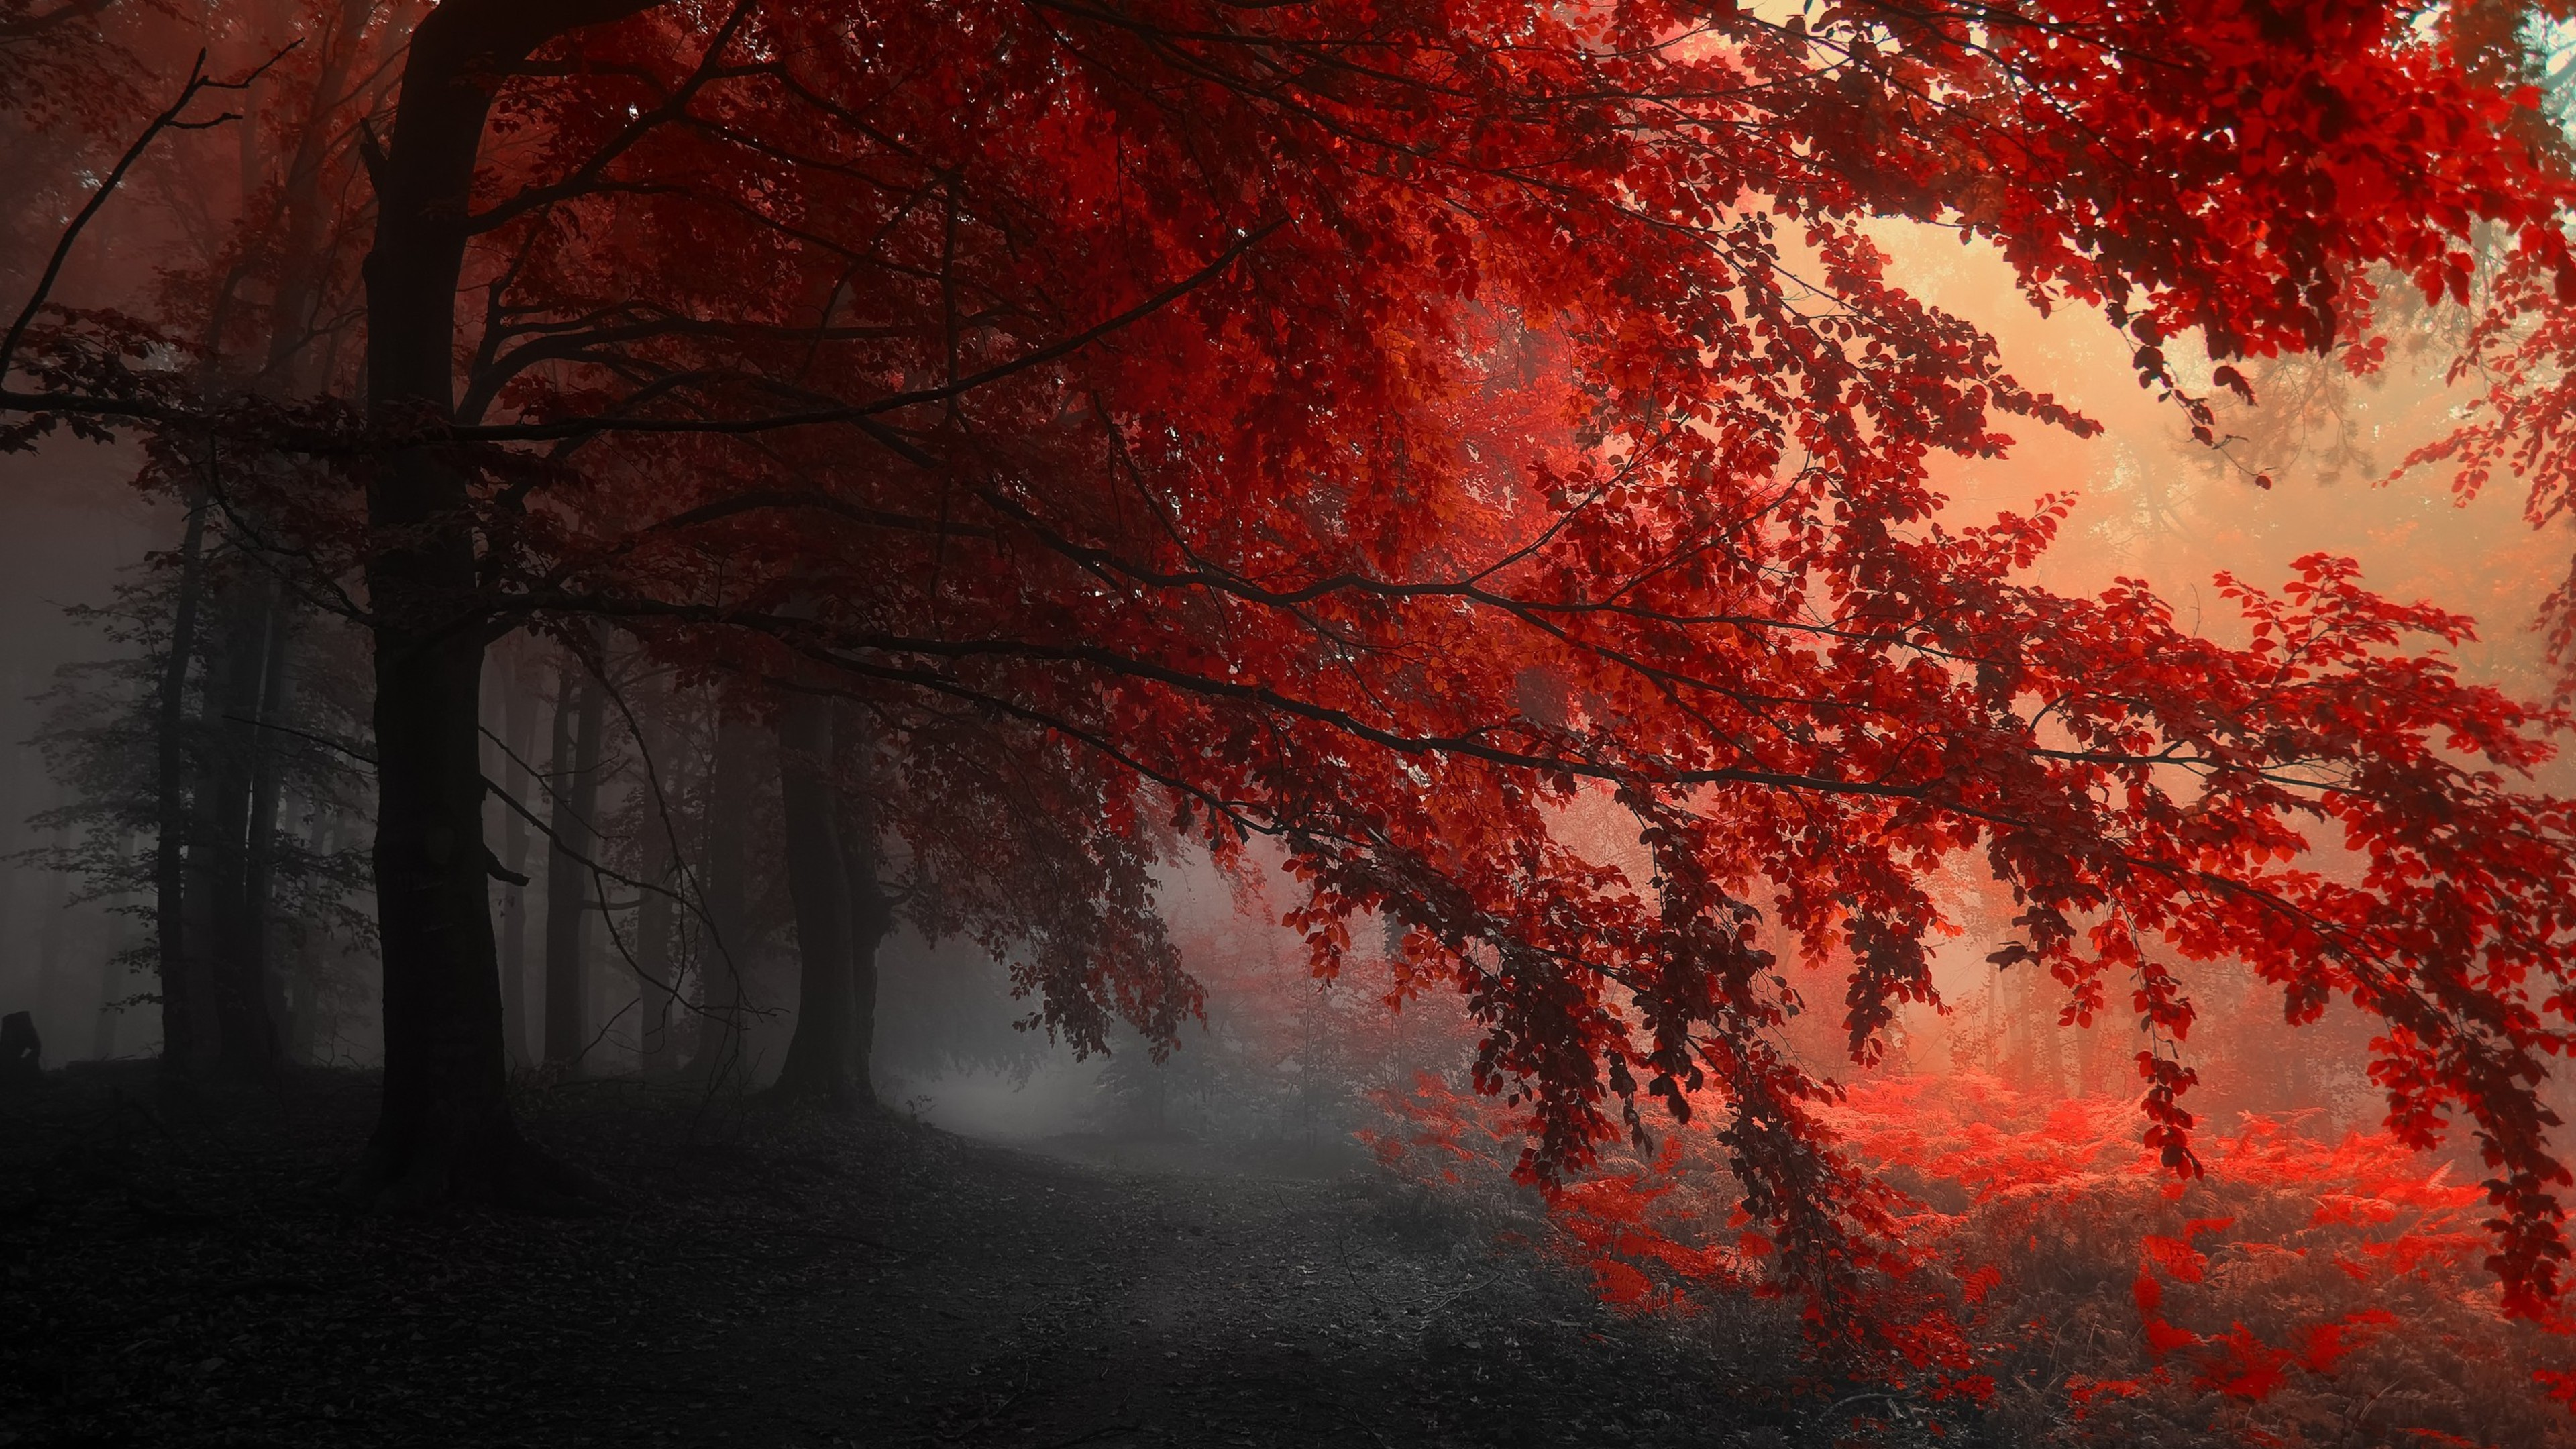 red forest trees path 4k 1540131549 - Red Forest Trees Path 4k - trees wallpapers, red wallpapers, path wallpapers, forest wallpapers